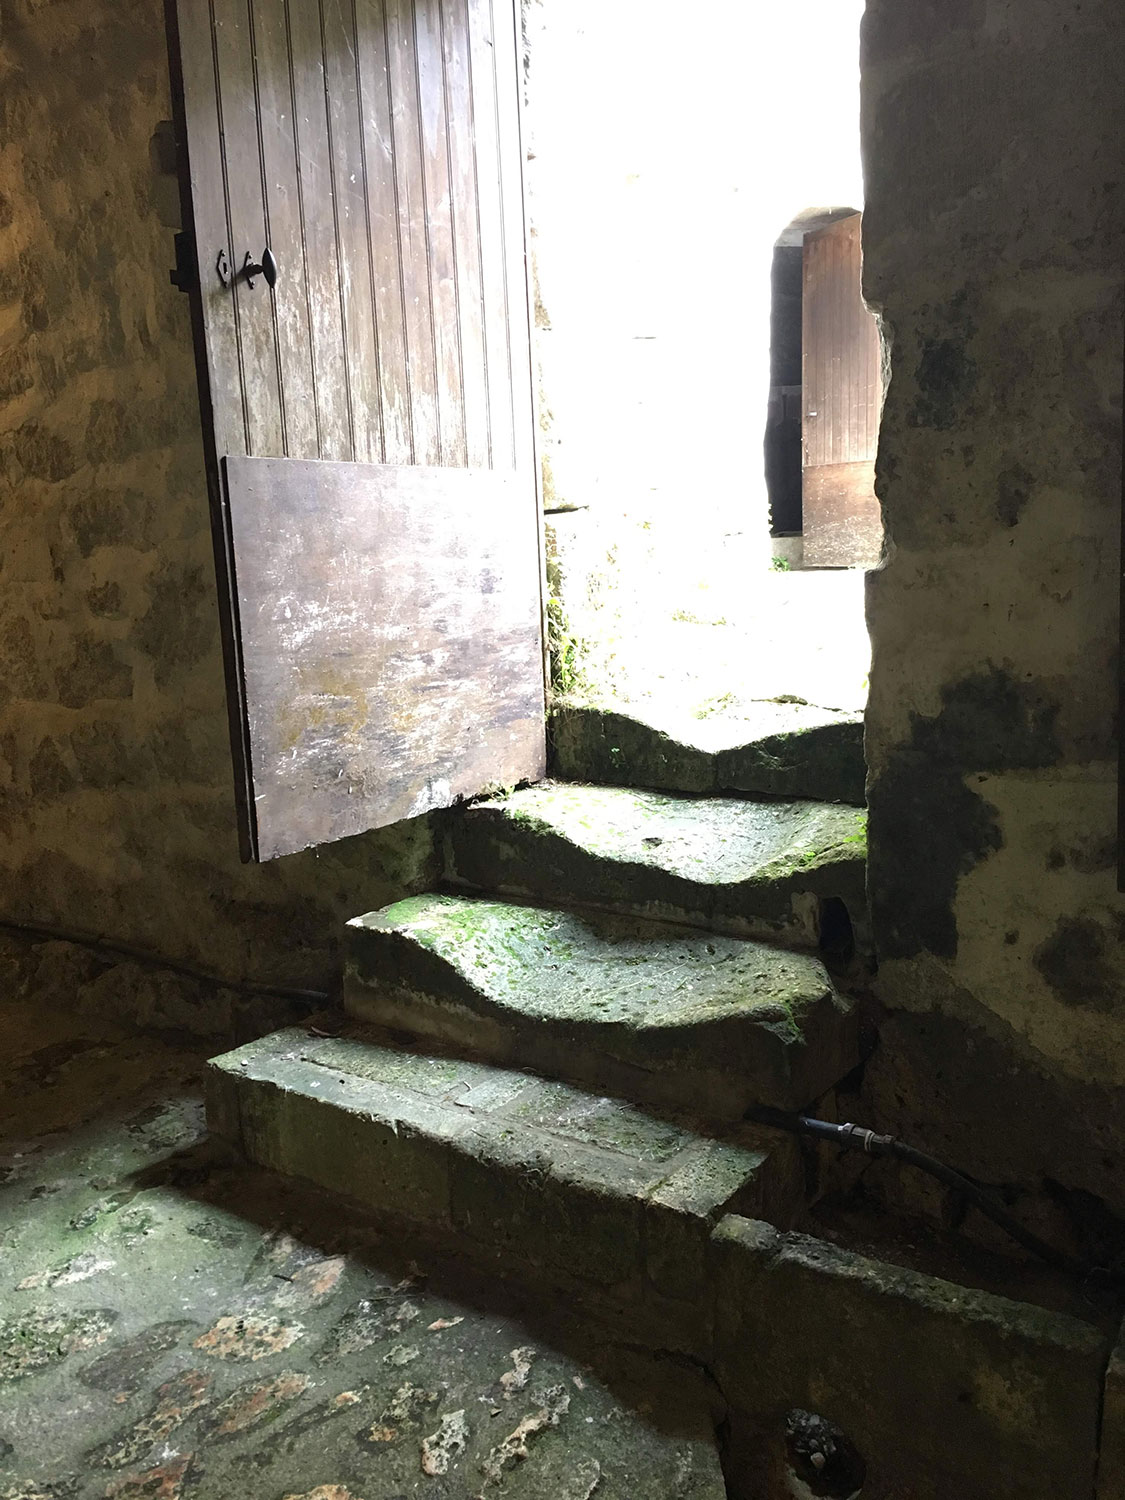 Four stone steps, leading to a sunny outdoors, appear moss-stained and deeply worn down in their centers. There is a wood door that opens into the building at left. A rough stone floor is visible in the foreground.